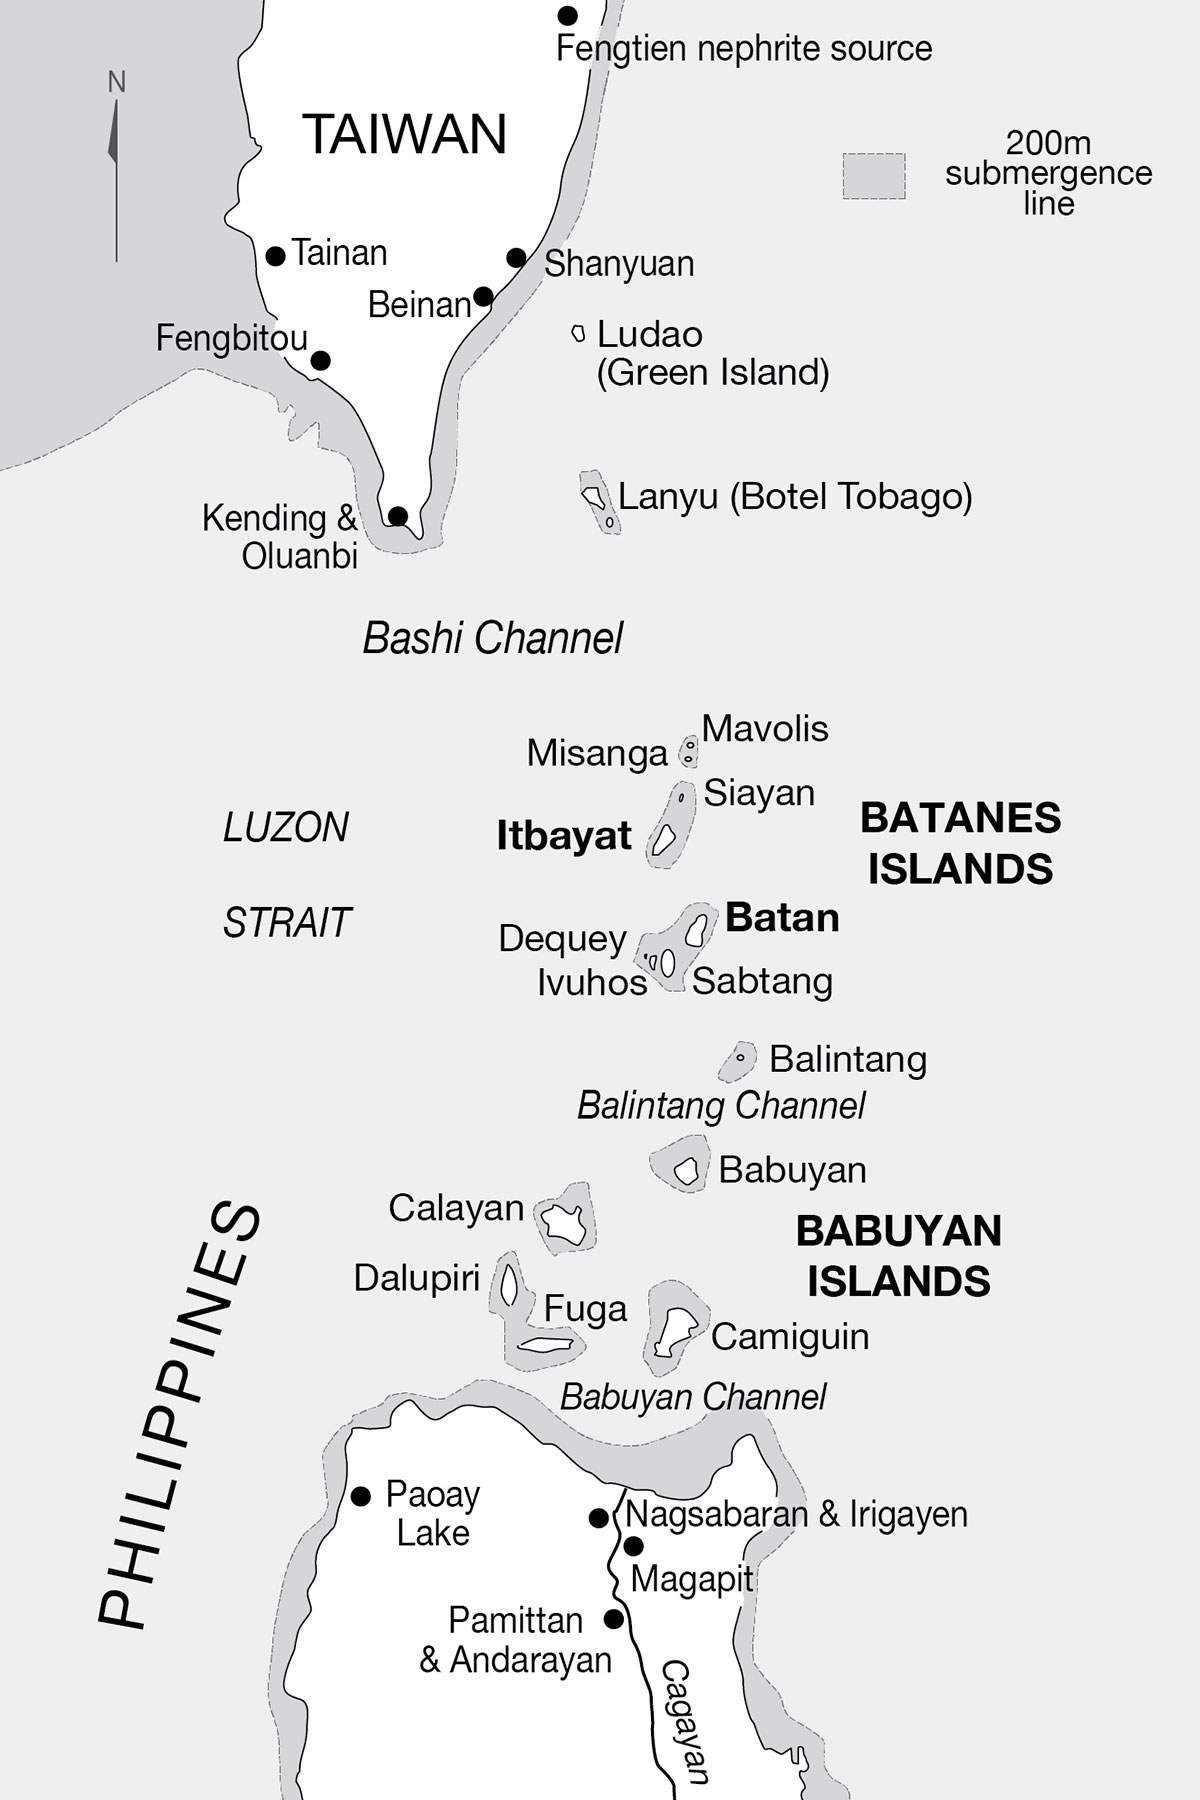 The Batanes Islands, staging grounds for the Austronesian diaspora - Peter Bellwood, Australia National University (ANU)